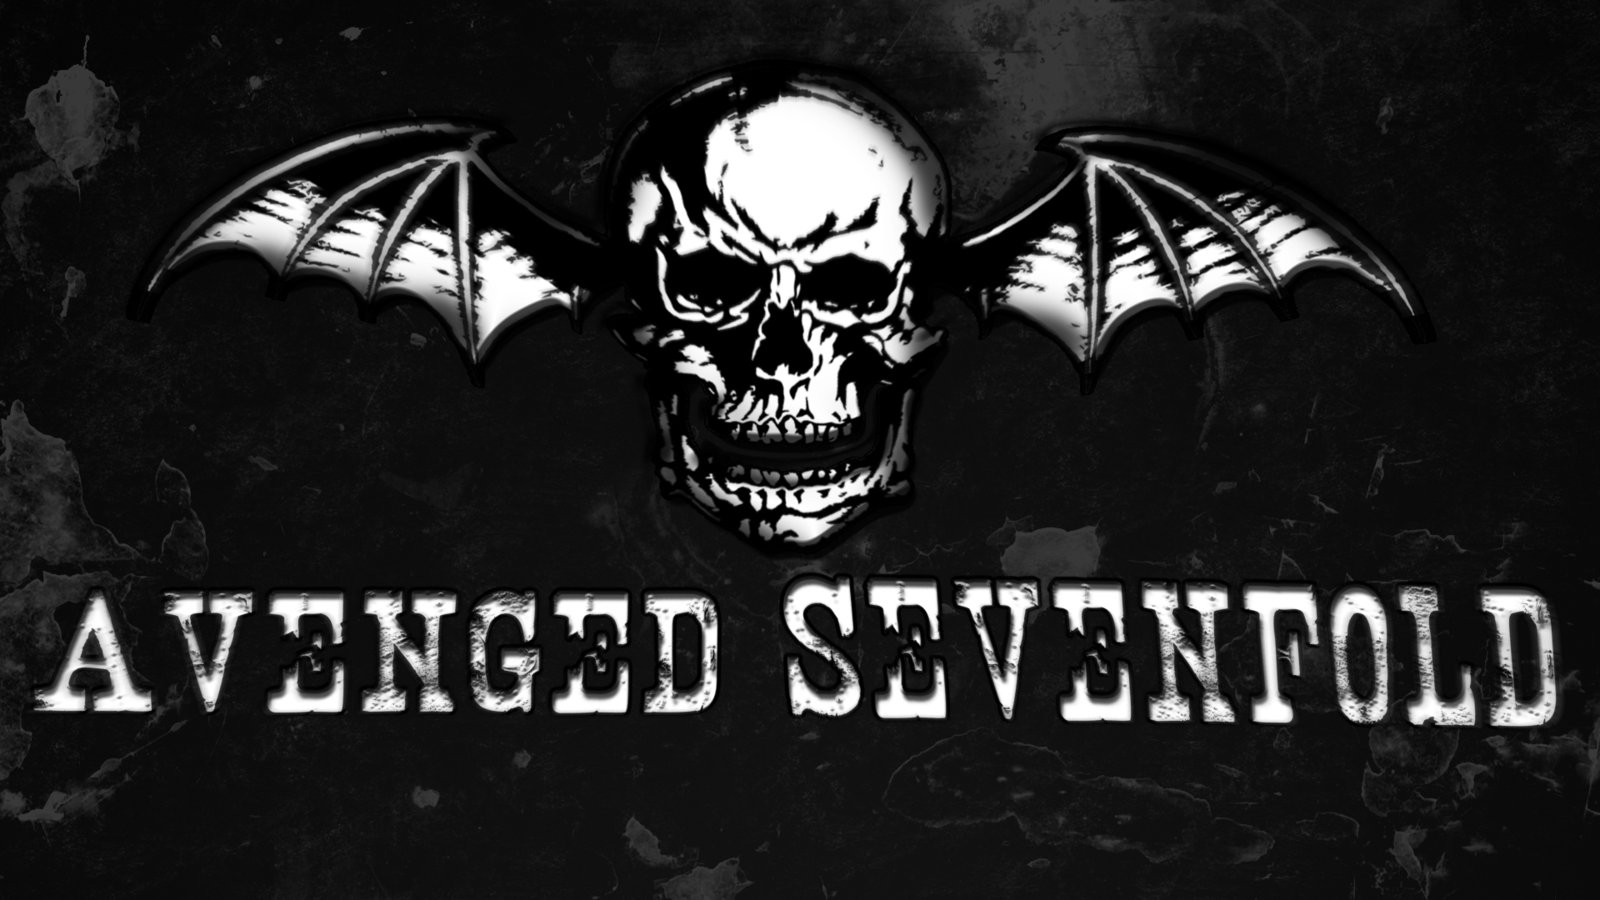 Avenged Sevenfold Deathbat Wallpaper by ChaoticHazard on Wallpaper 1600x900